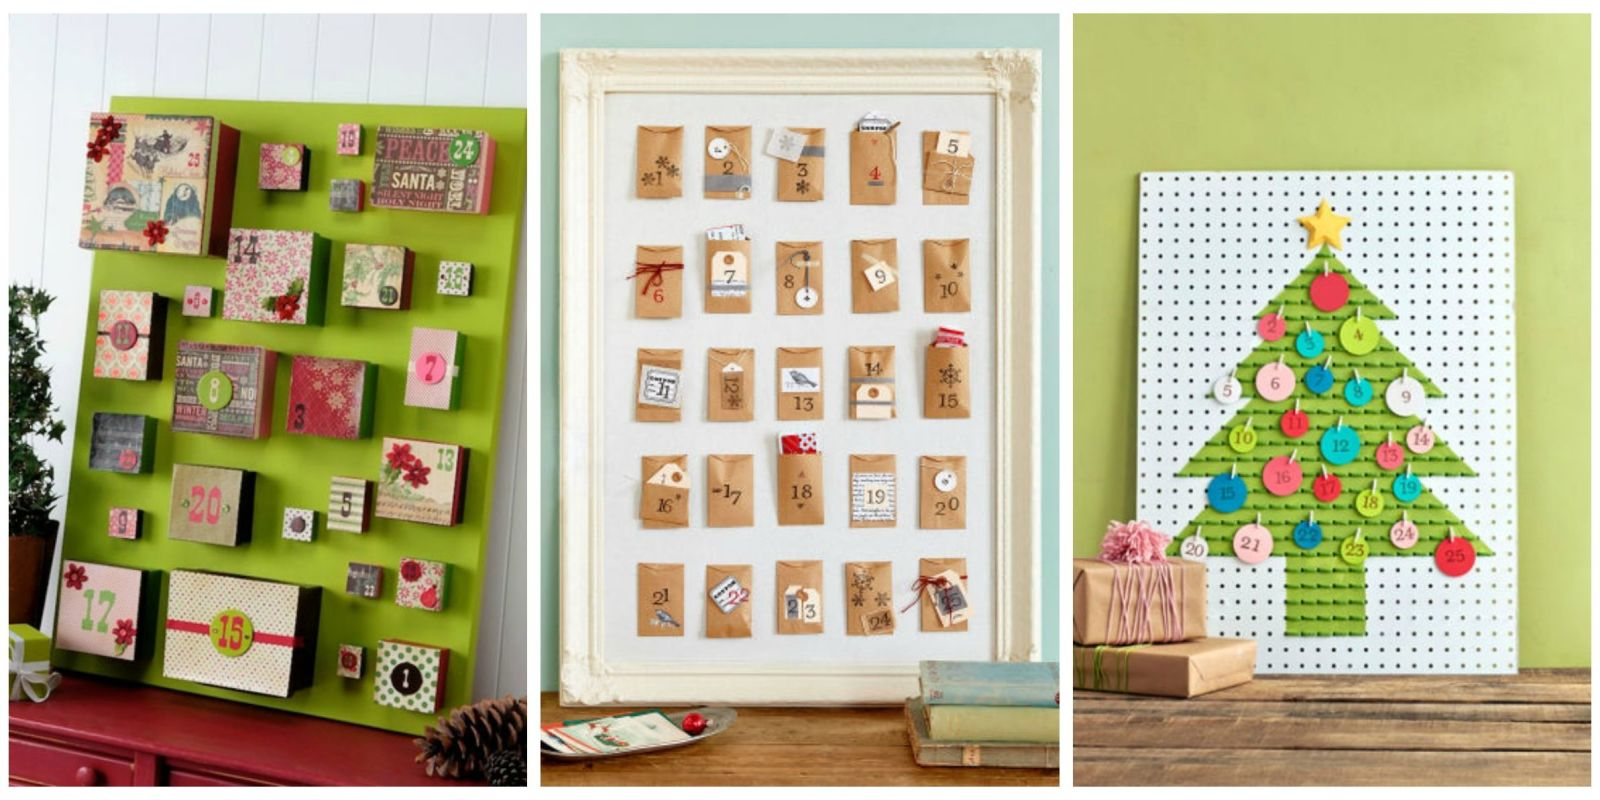 25 diy advent calendar ideas homemade christmas advent for Diy christmas advent calendar ideas